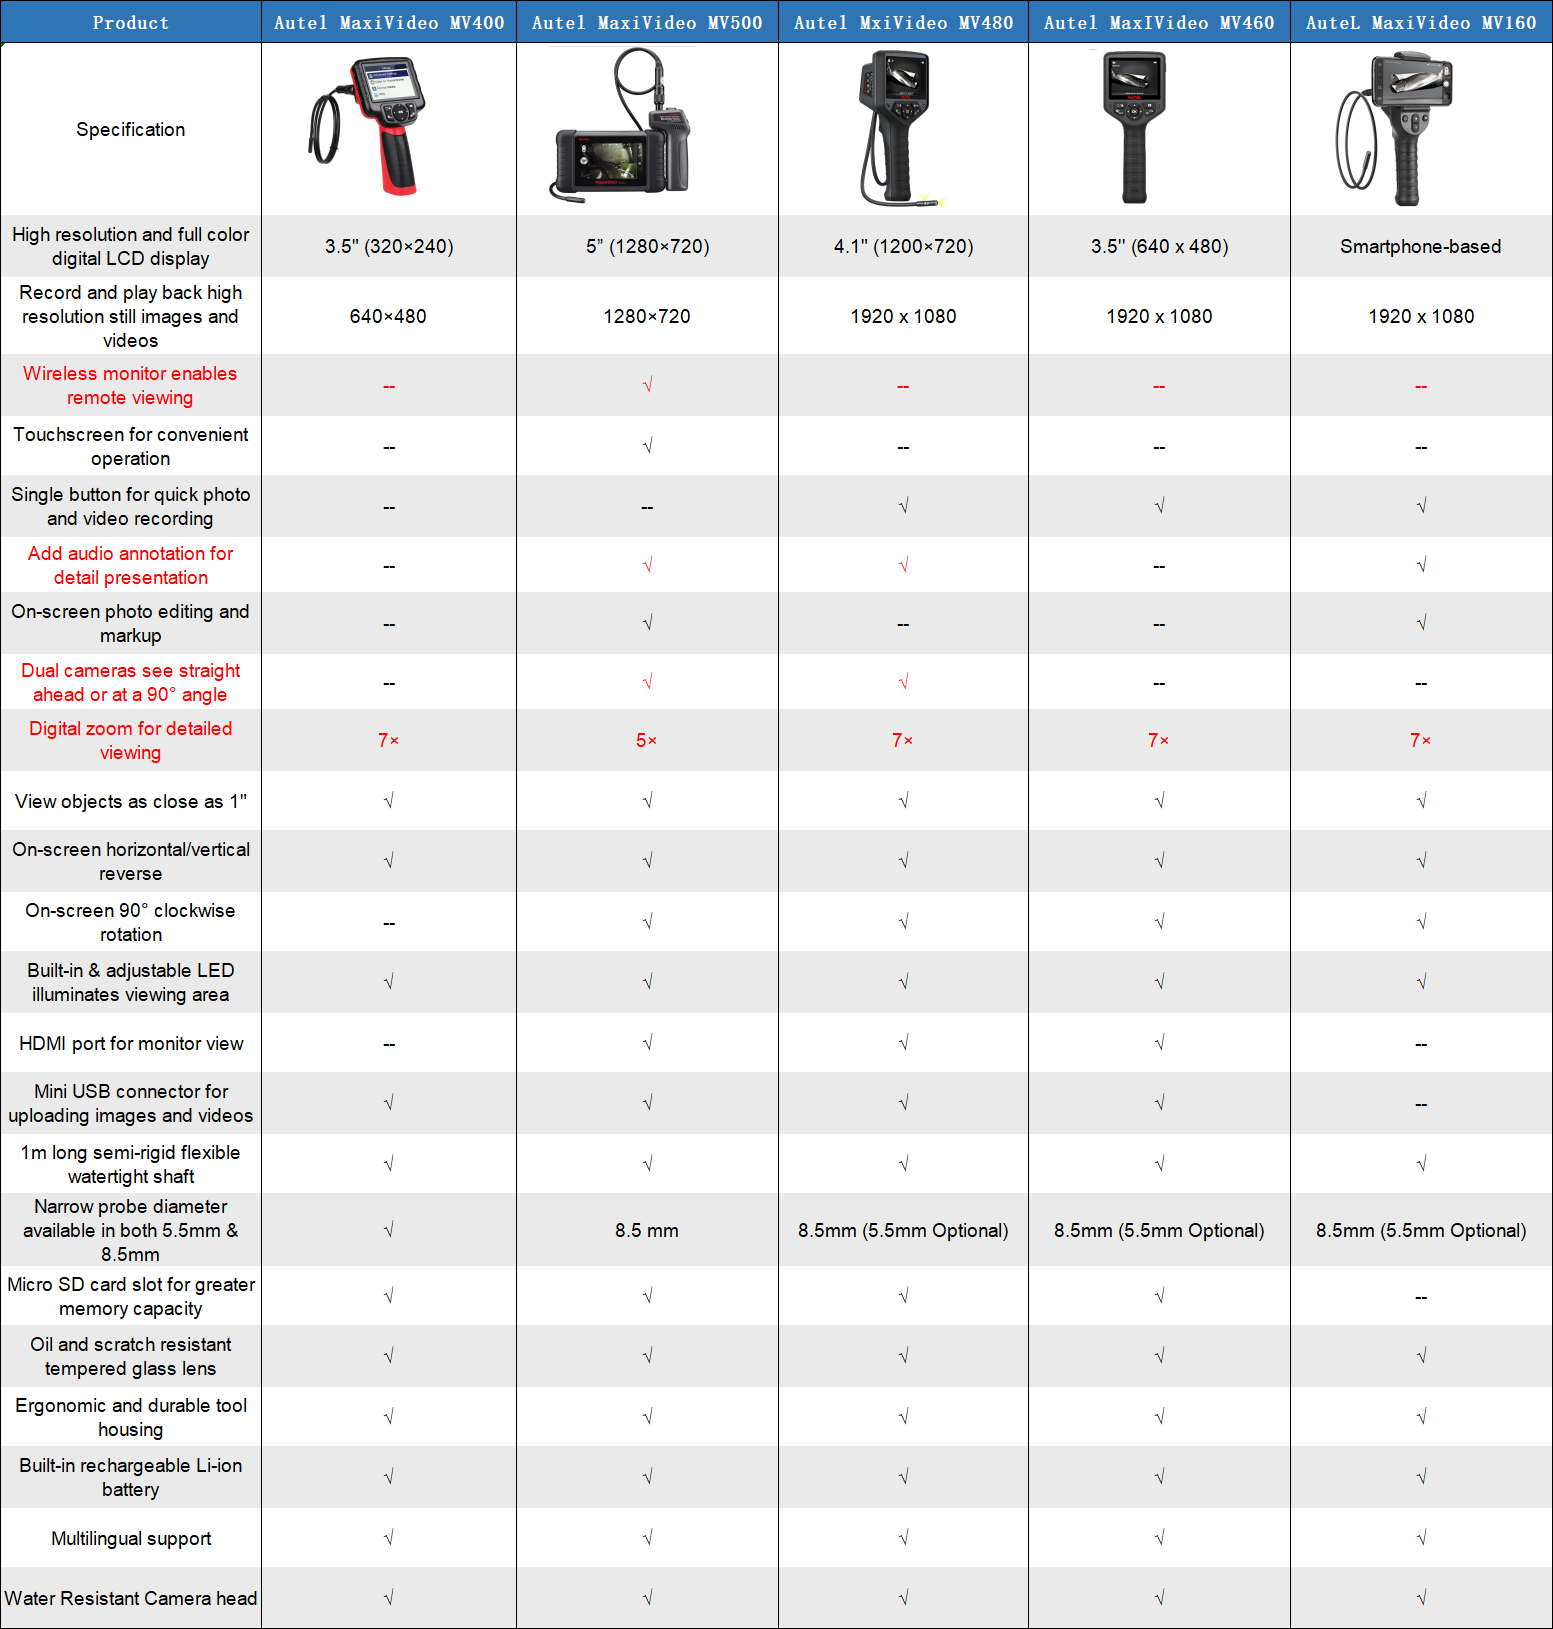 autel maxivideo tools comparison